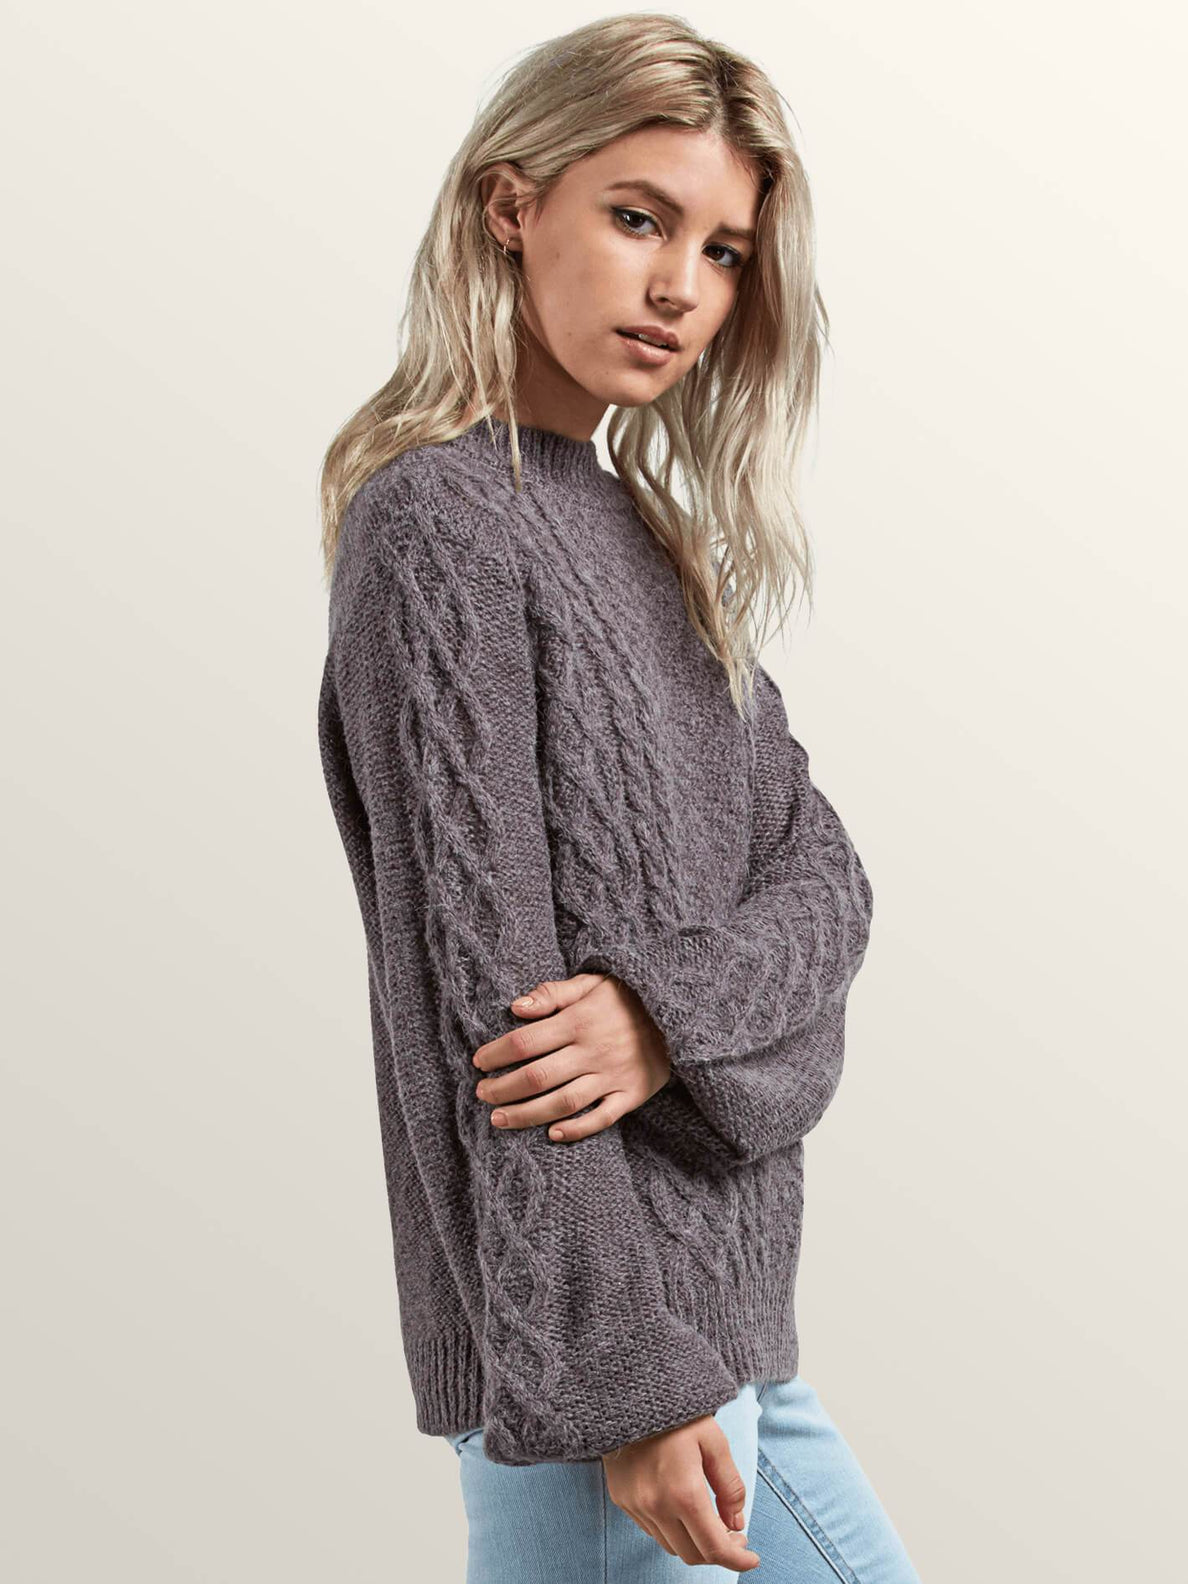 Hellooo Sweater In Heather Grey, Alternate View